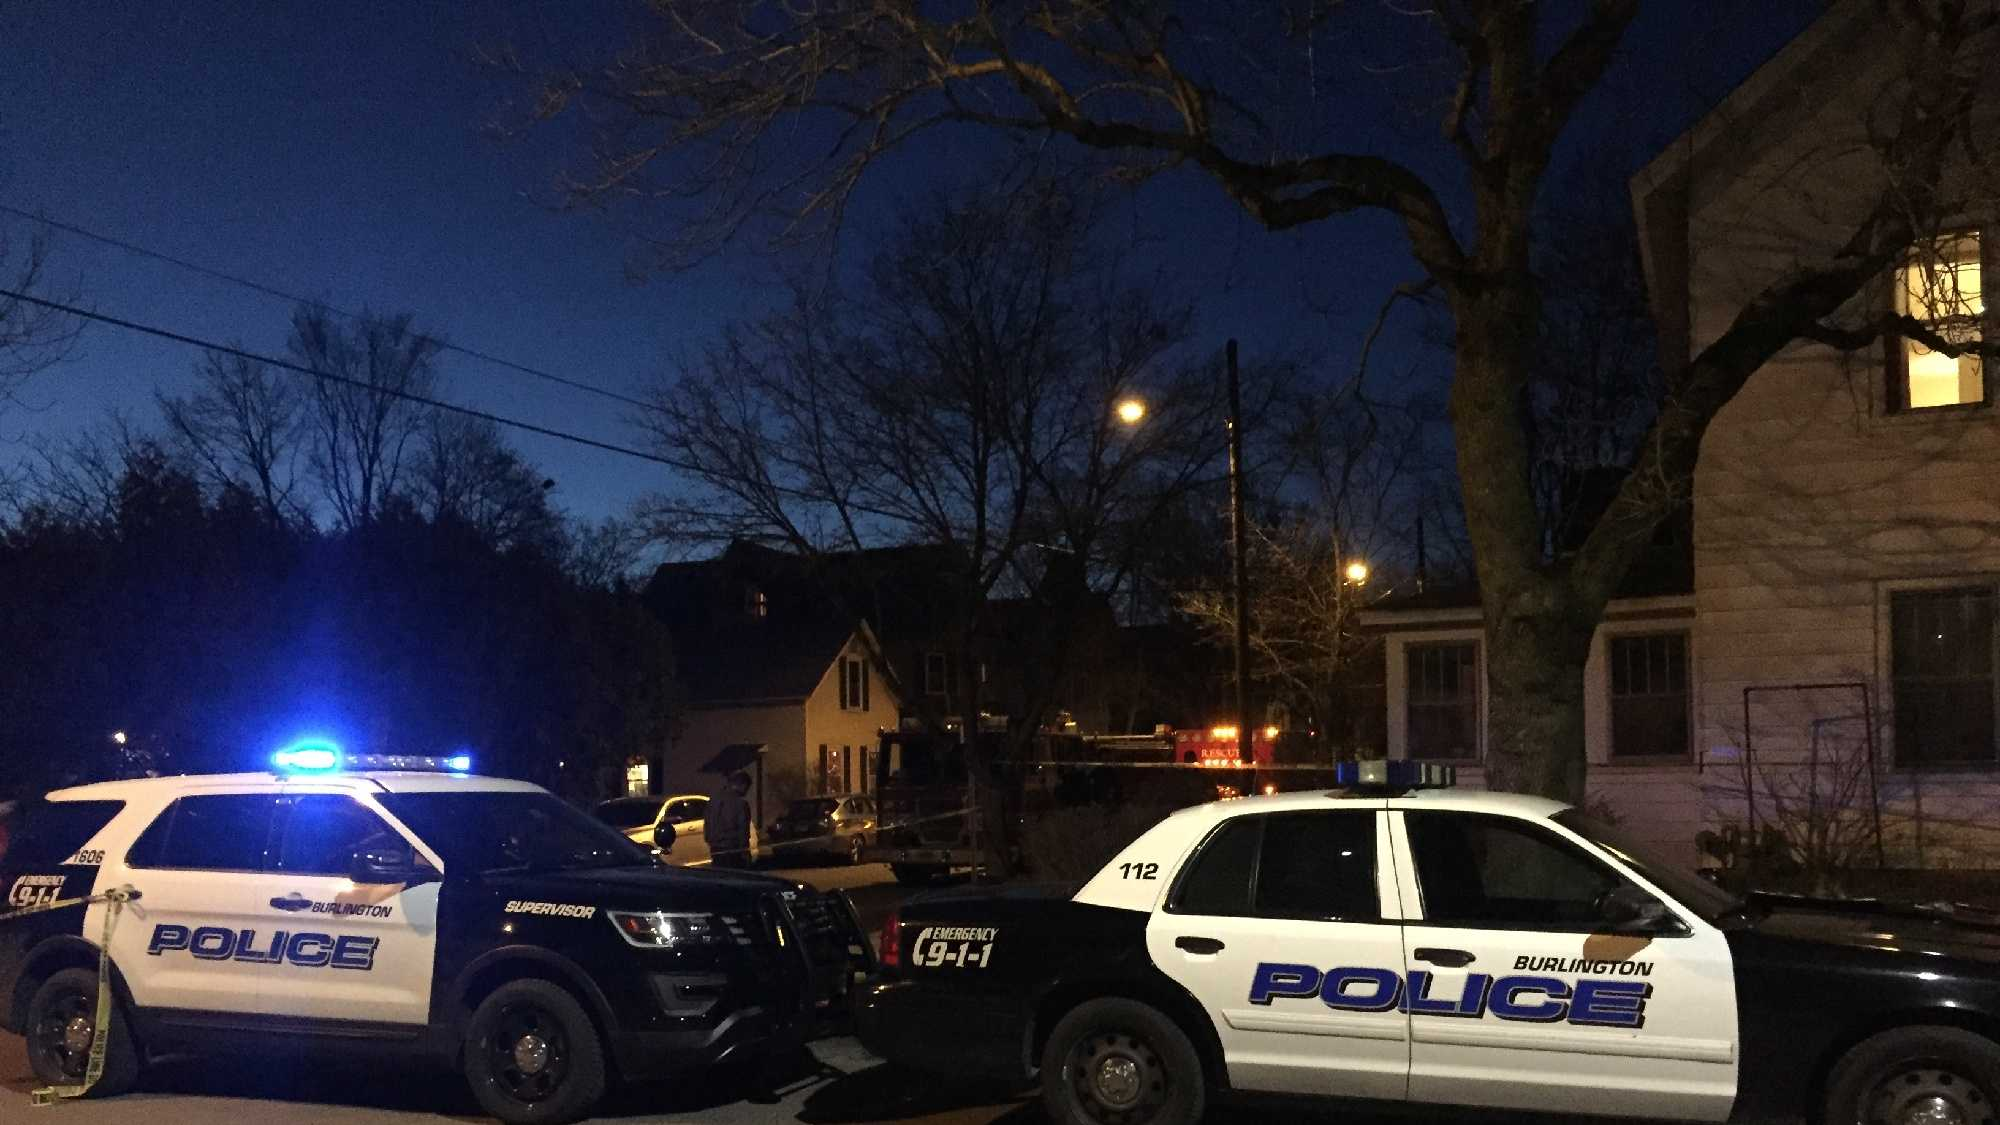 Burlington police closed off Greene Street in Burlington as part of an investigation Thursday night.